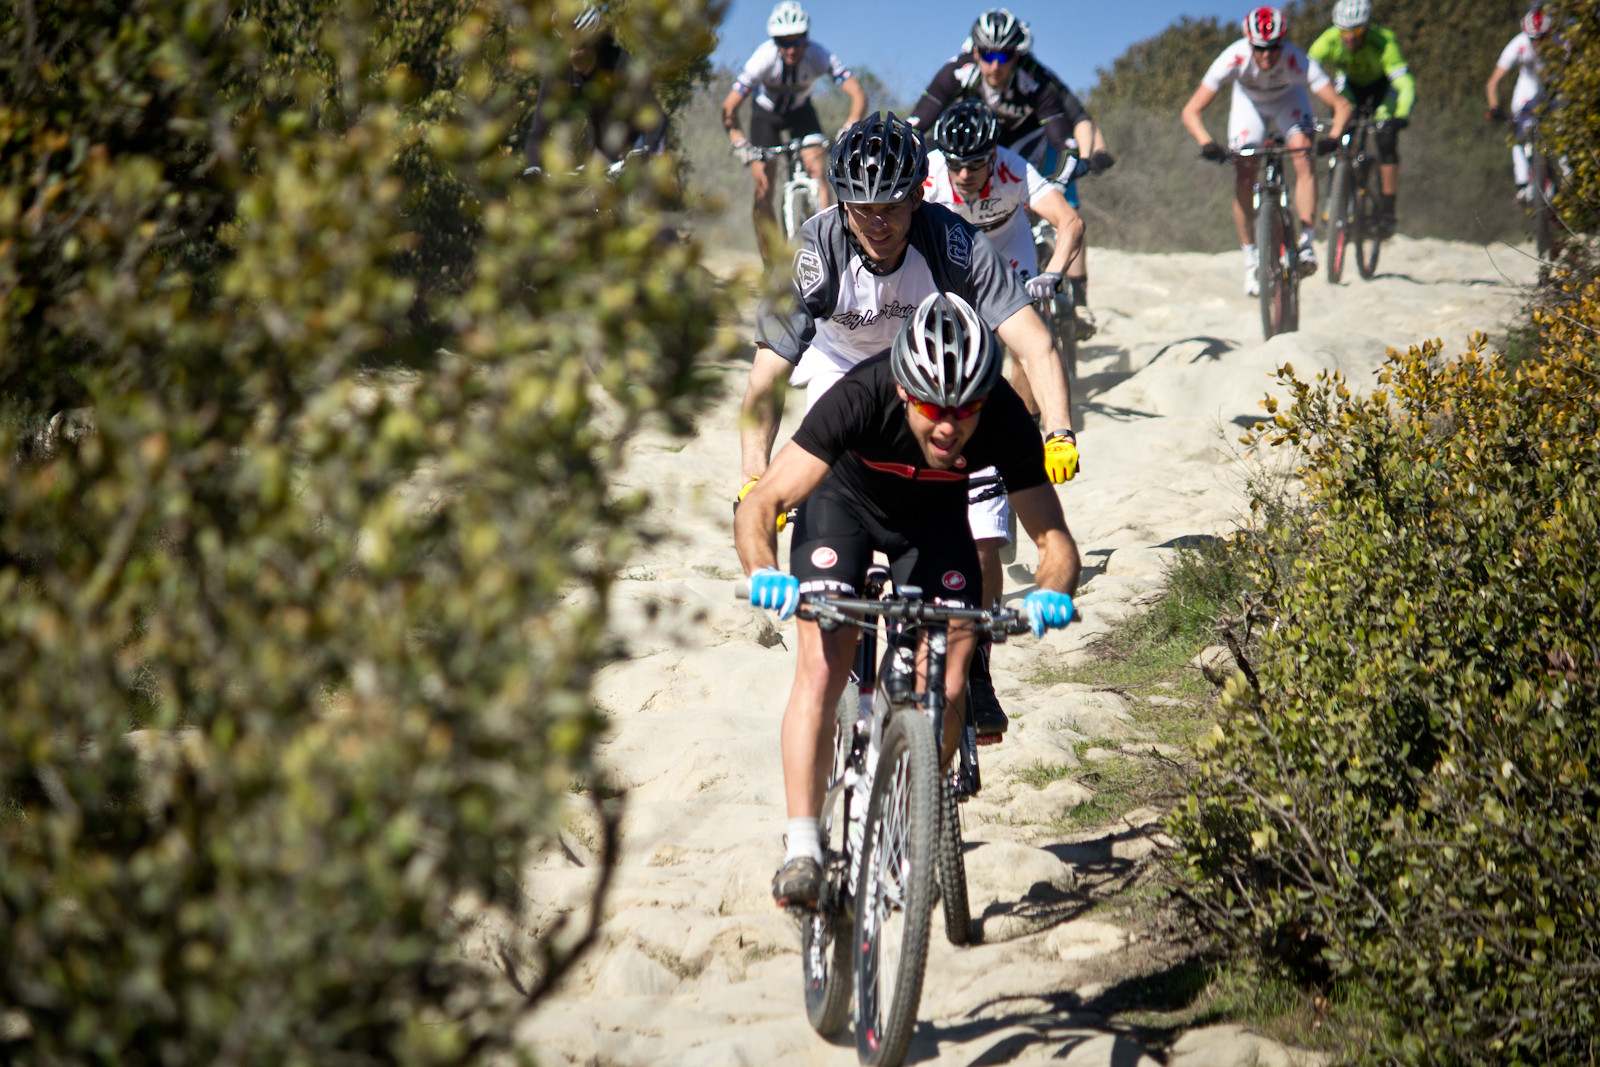 Curtis Keene on the Hunt - Specialized A1 Ride Daze - In Memory of Burry Stander - Mountain Biking Pictures - Vital MTB